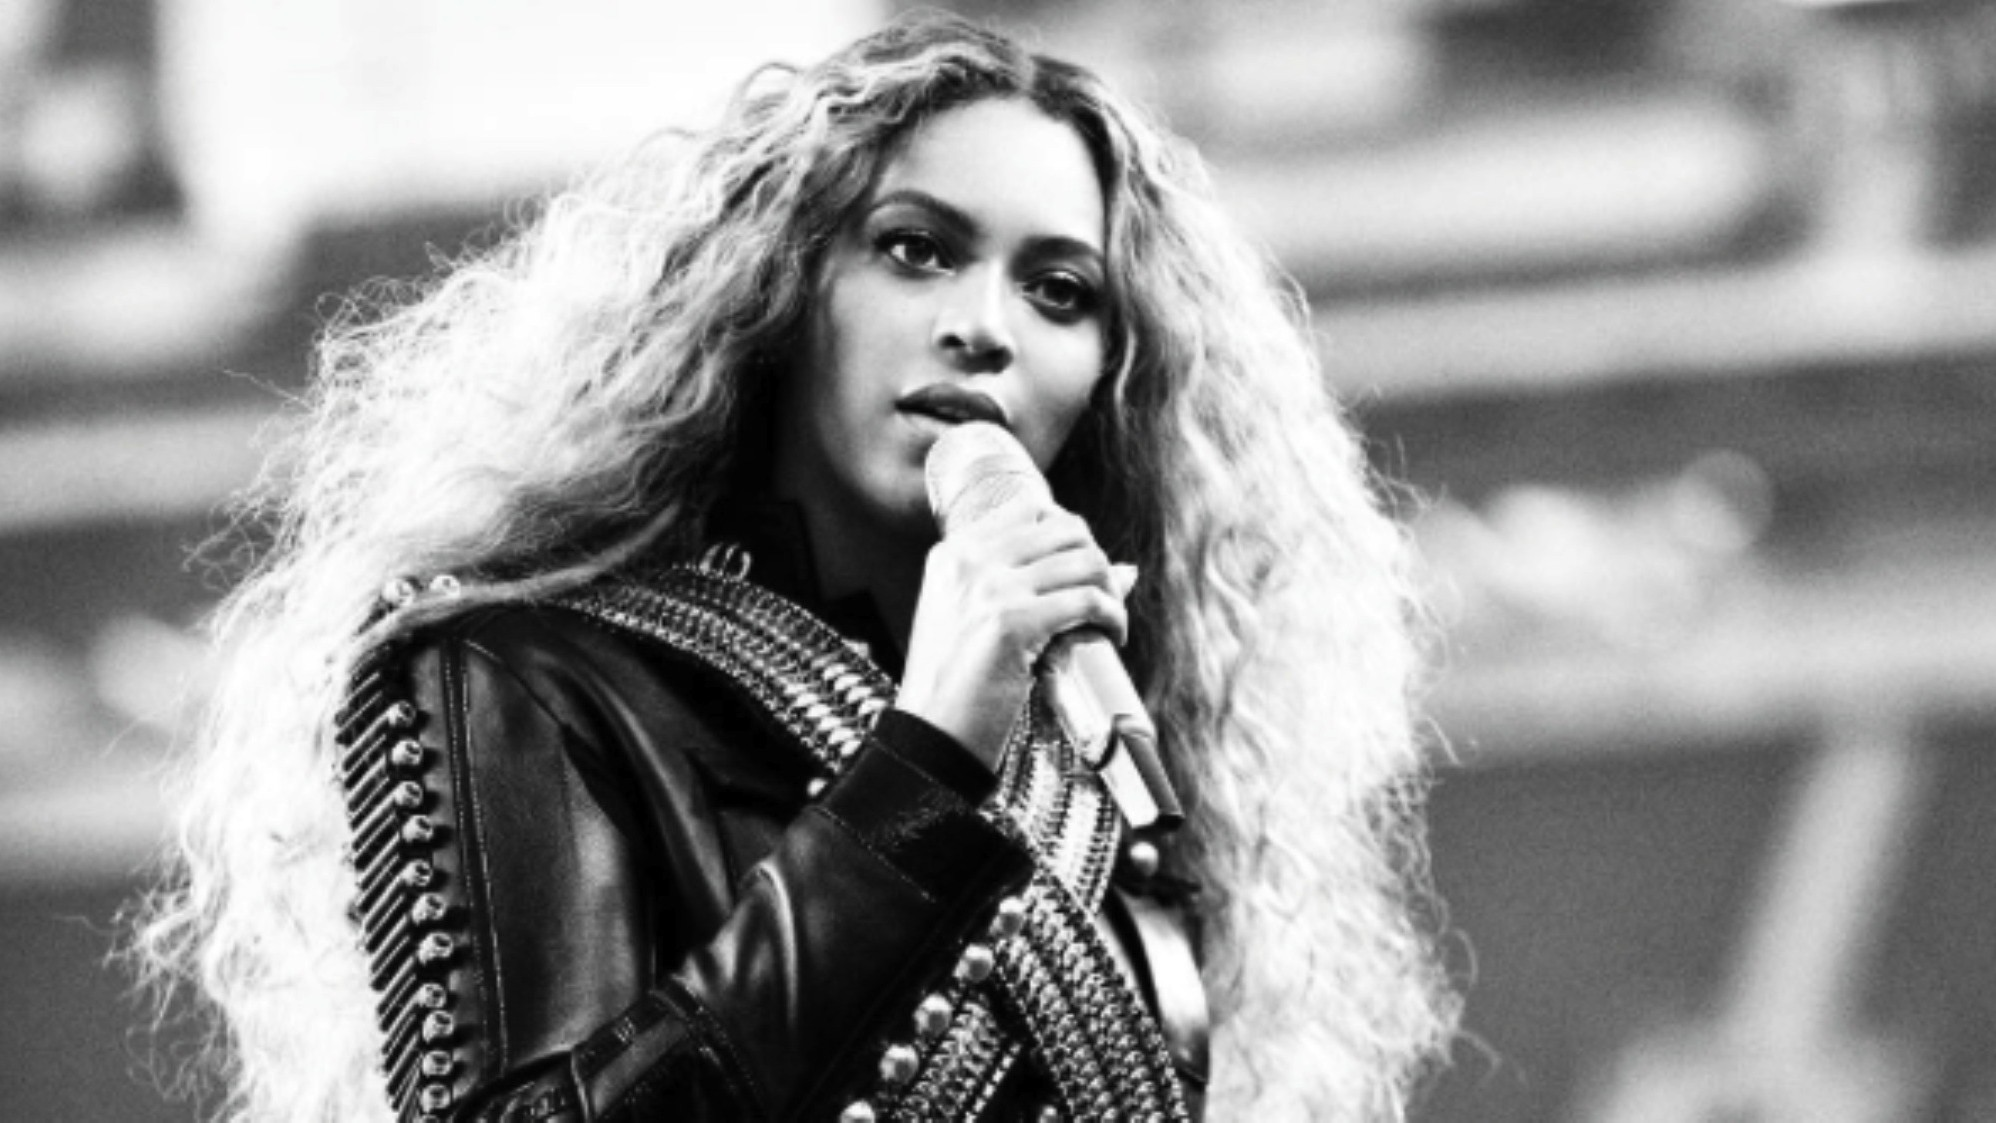 beyoncé postpones coachella performance on doctor's orders